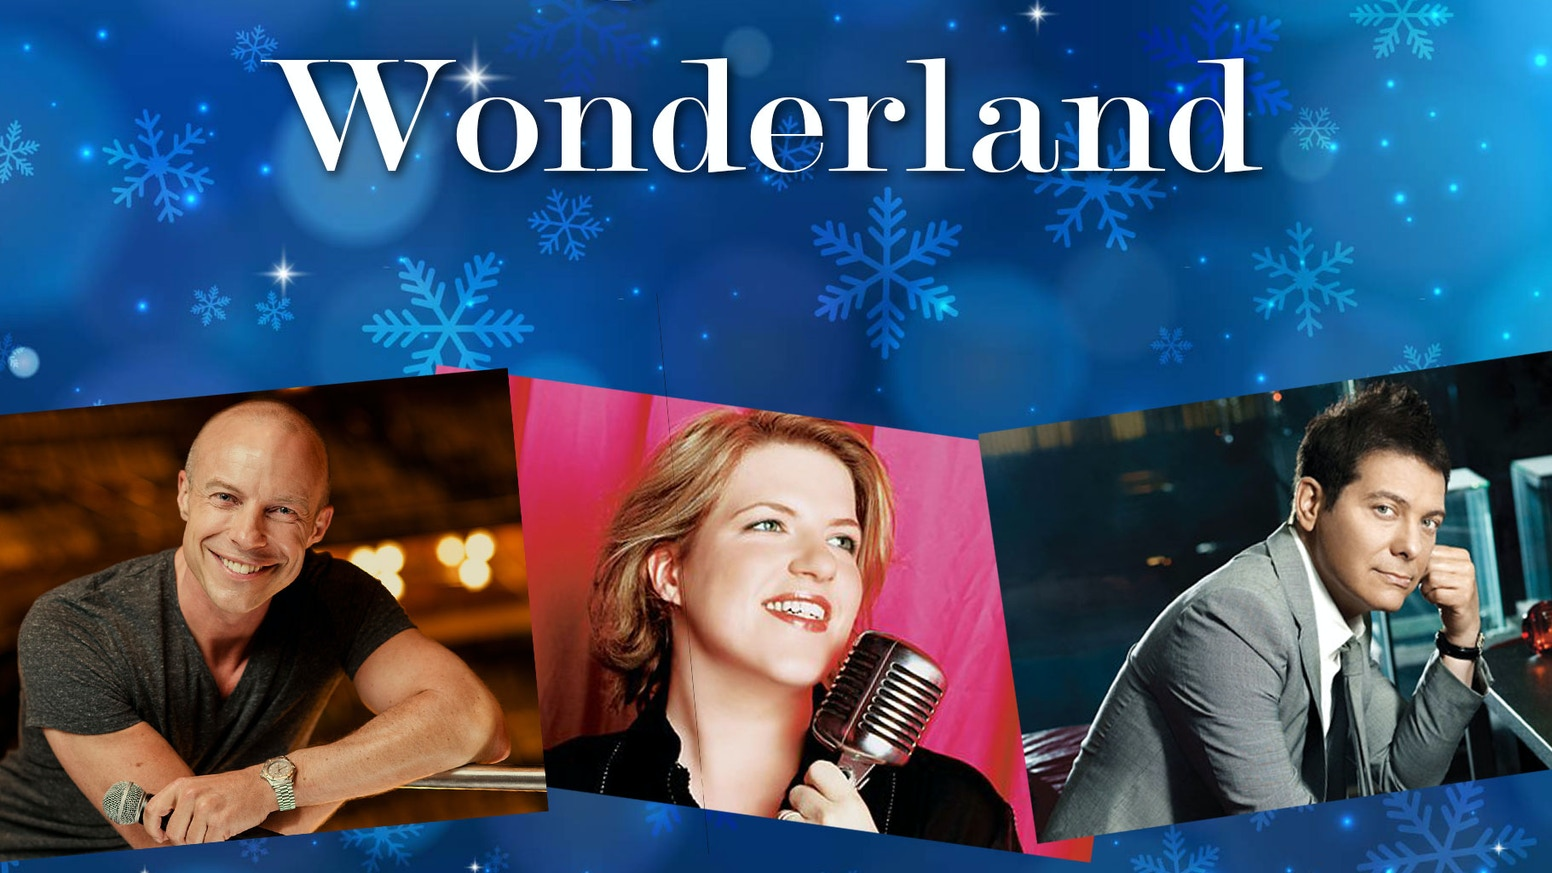 Follow our progress as we  record the new Christmas CD Big Band Wonderland with Clare Teal, Michael Feinstein and special guests.